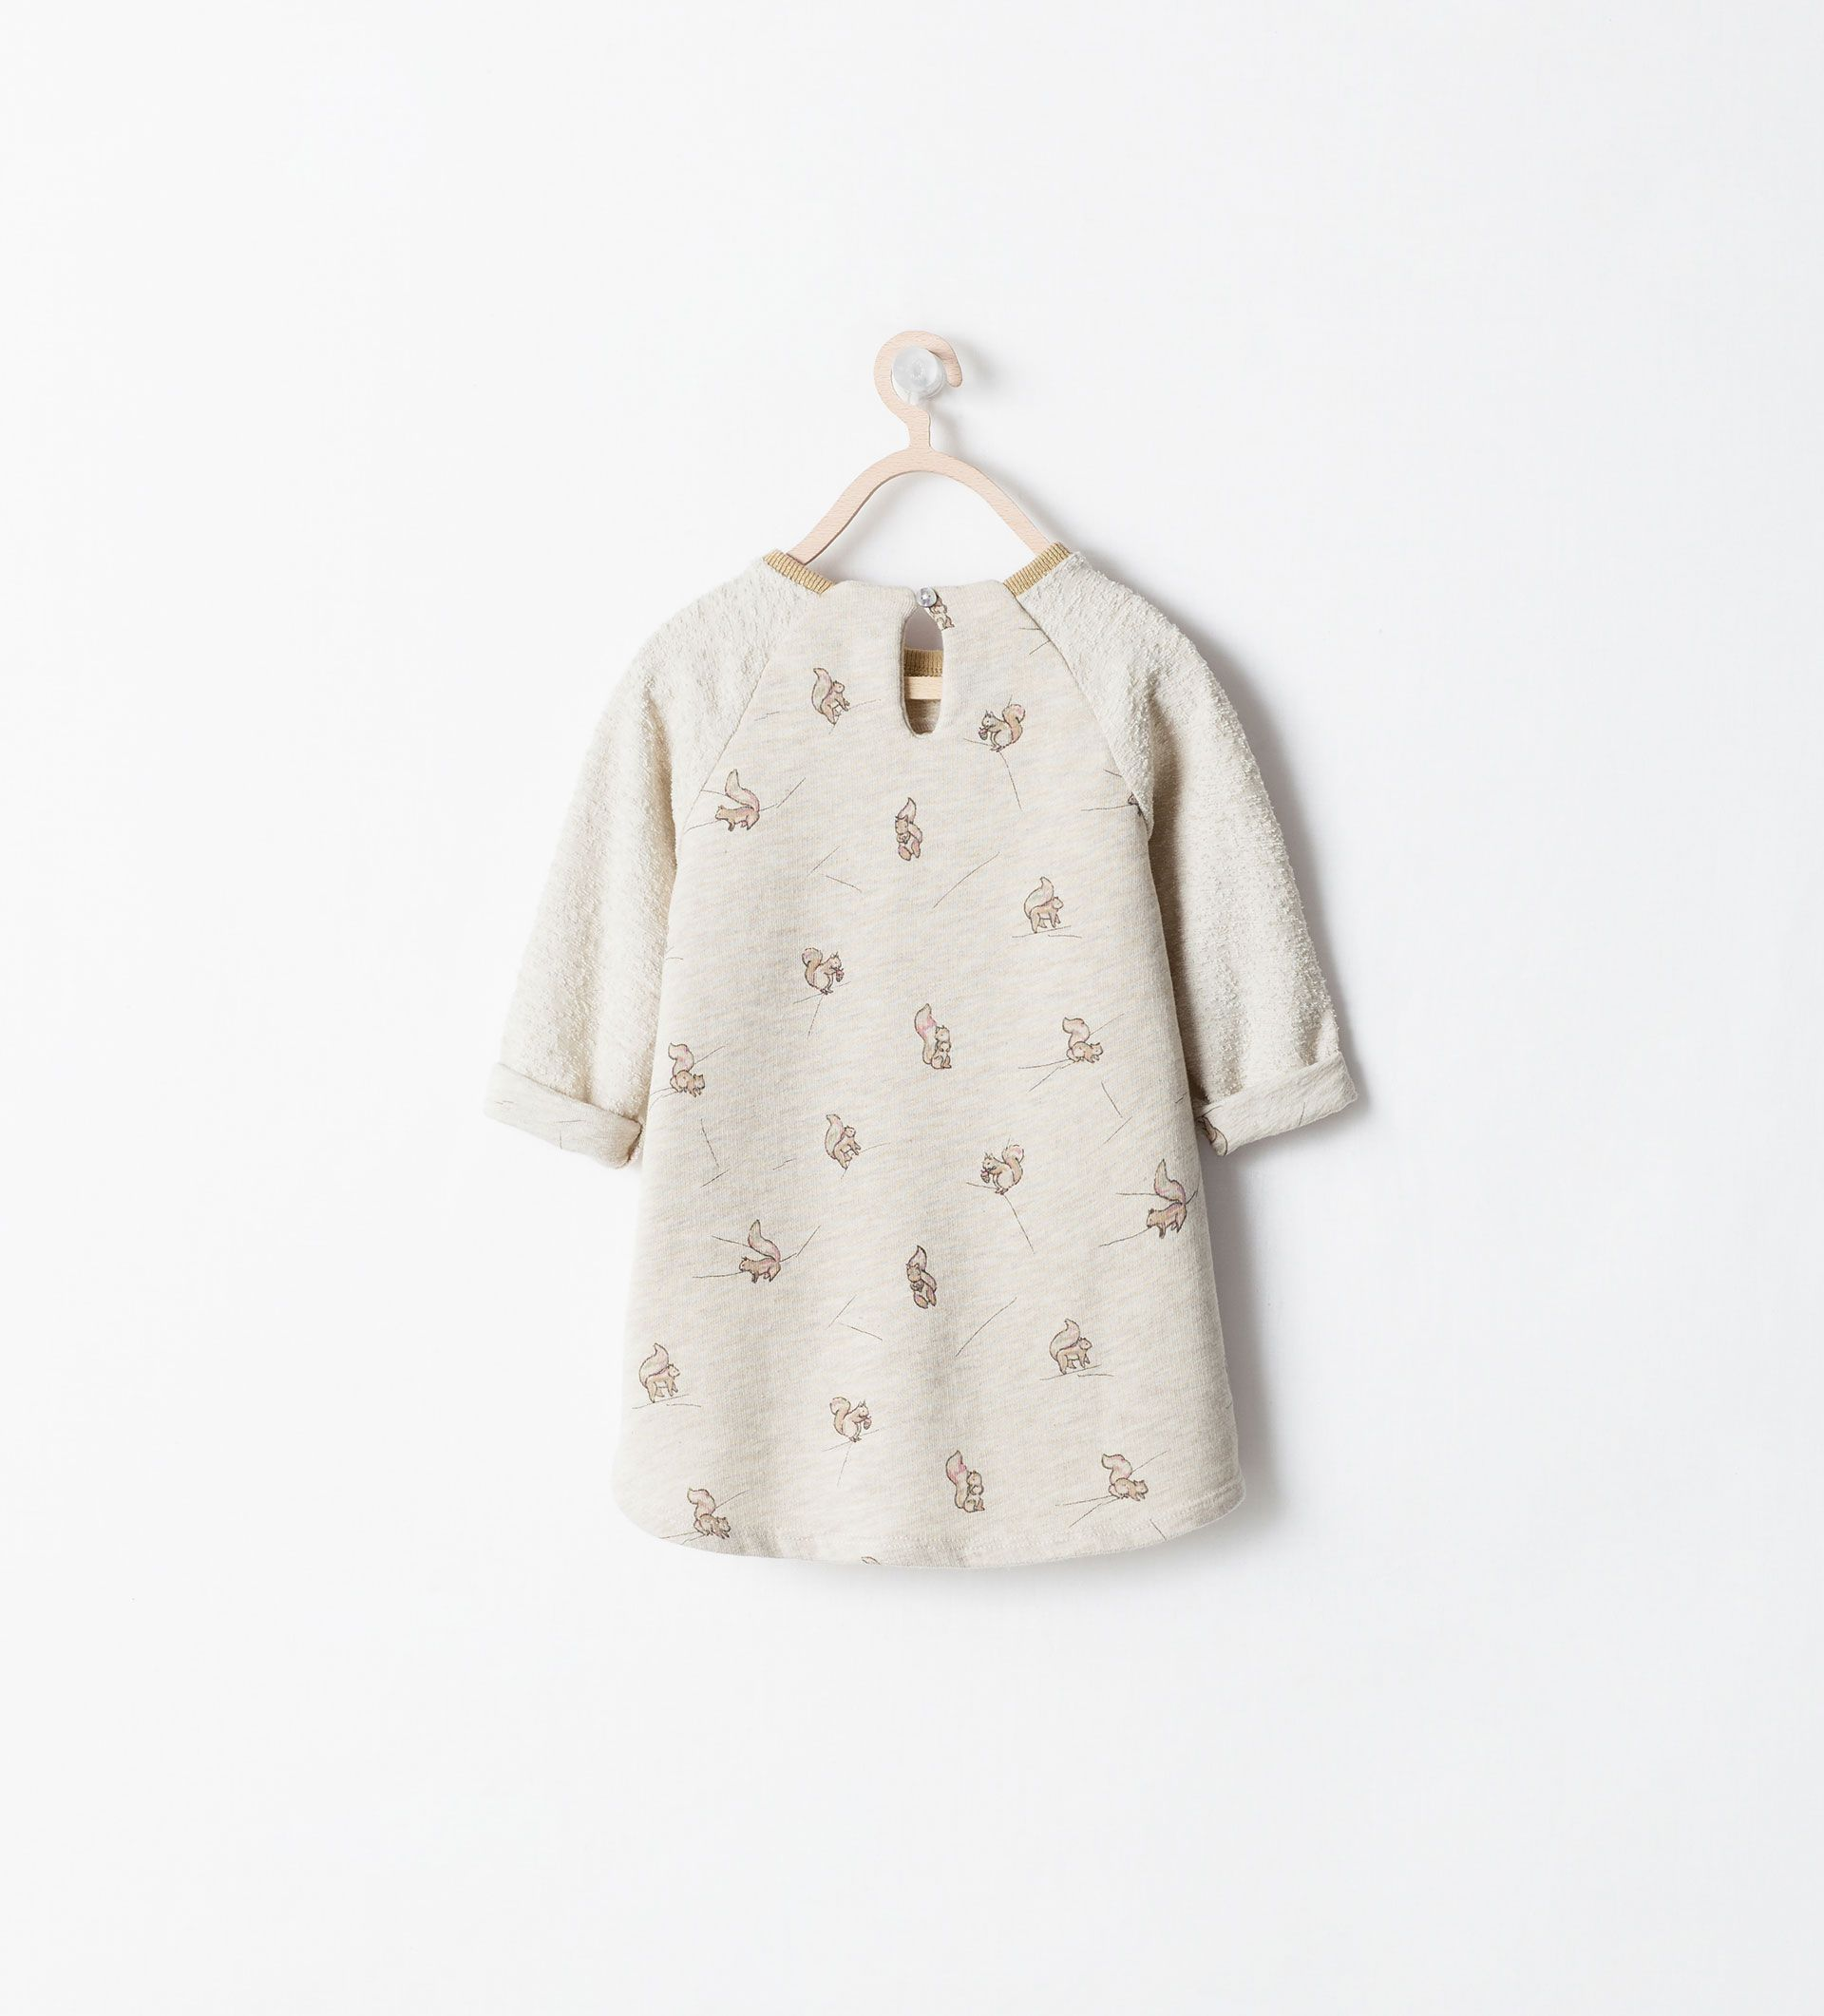 image 2 of mixed fabric squirrel print dress from zara kiddos